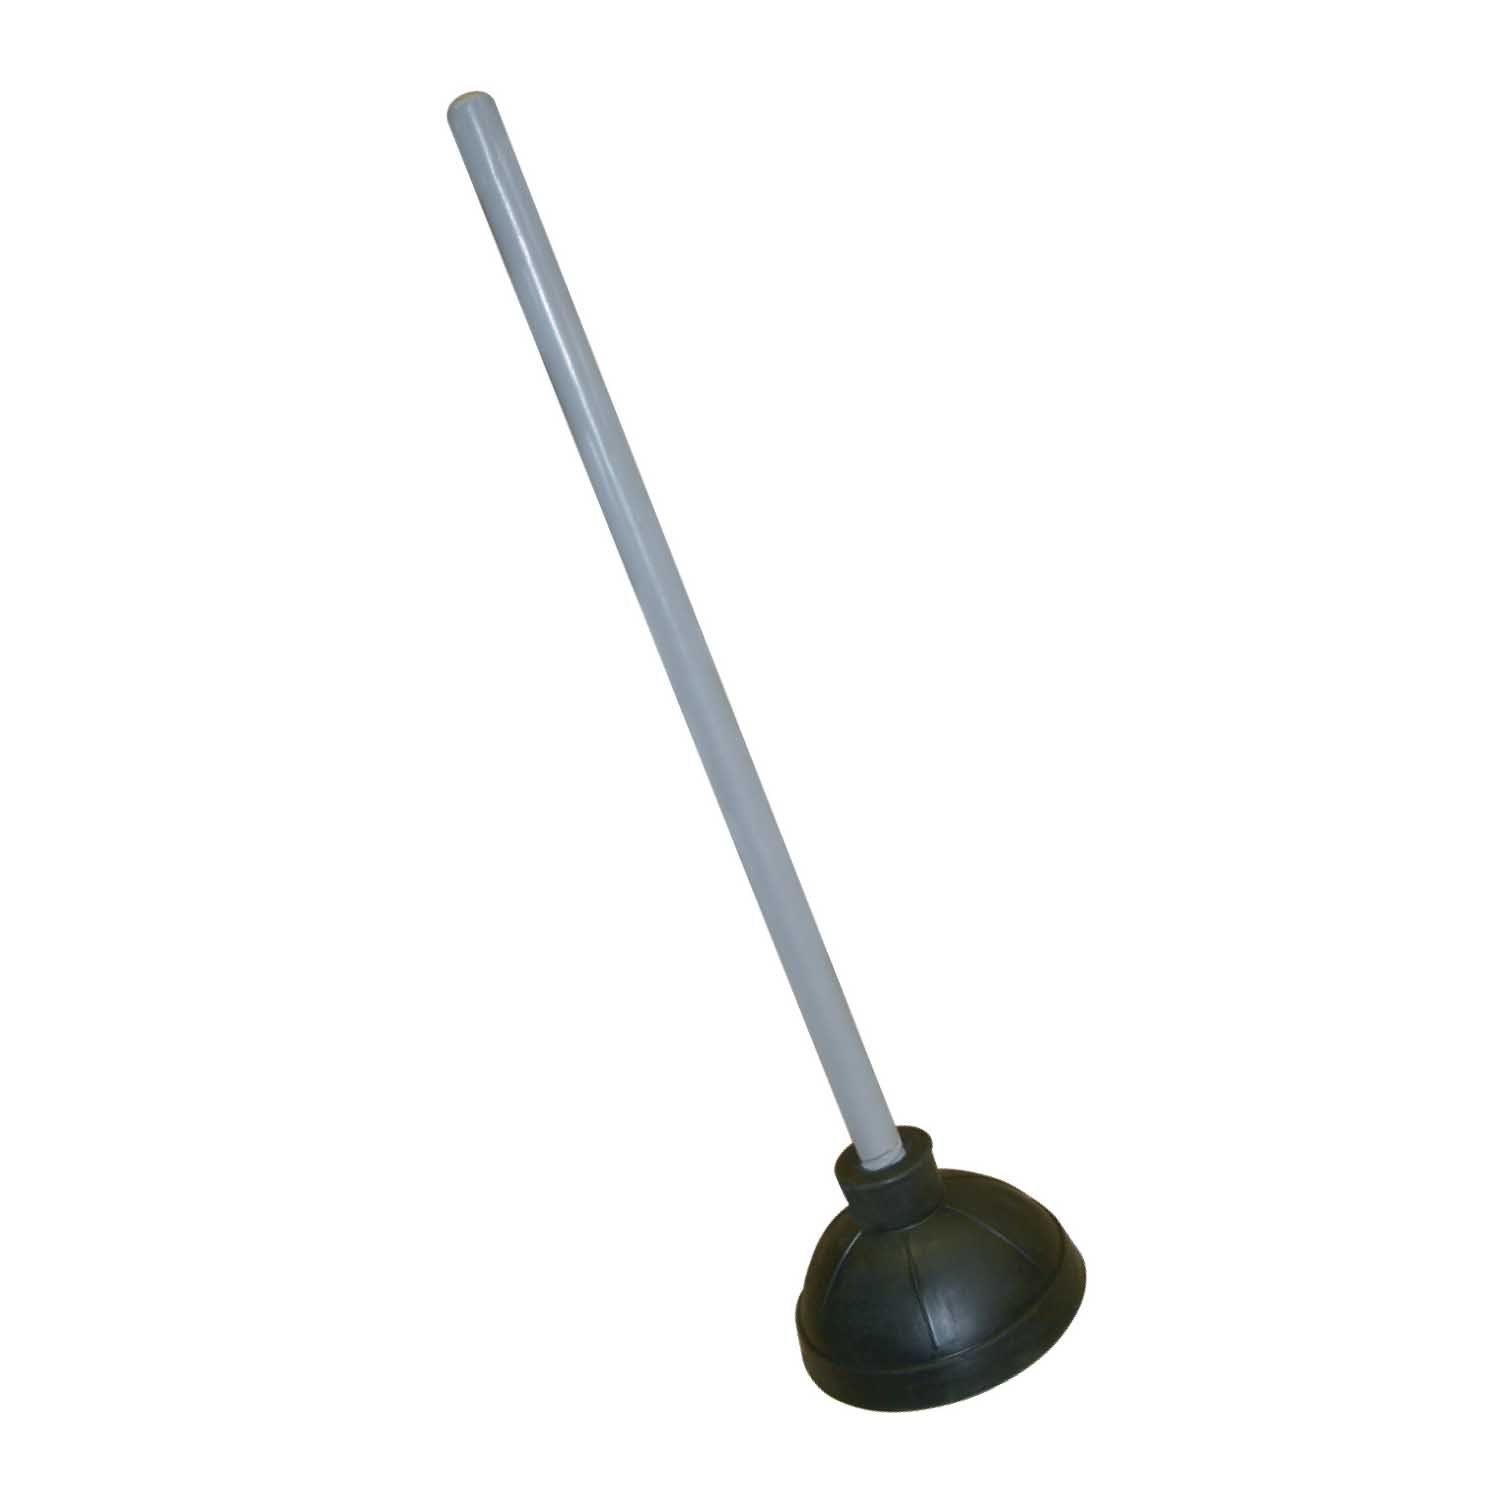 Excellante Plastic Plunger with 21-Inch Long Wooden Handle, Black